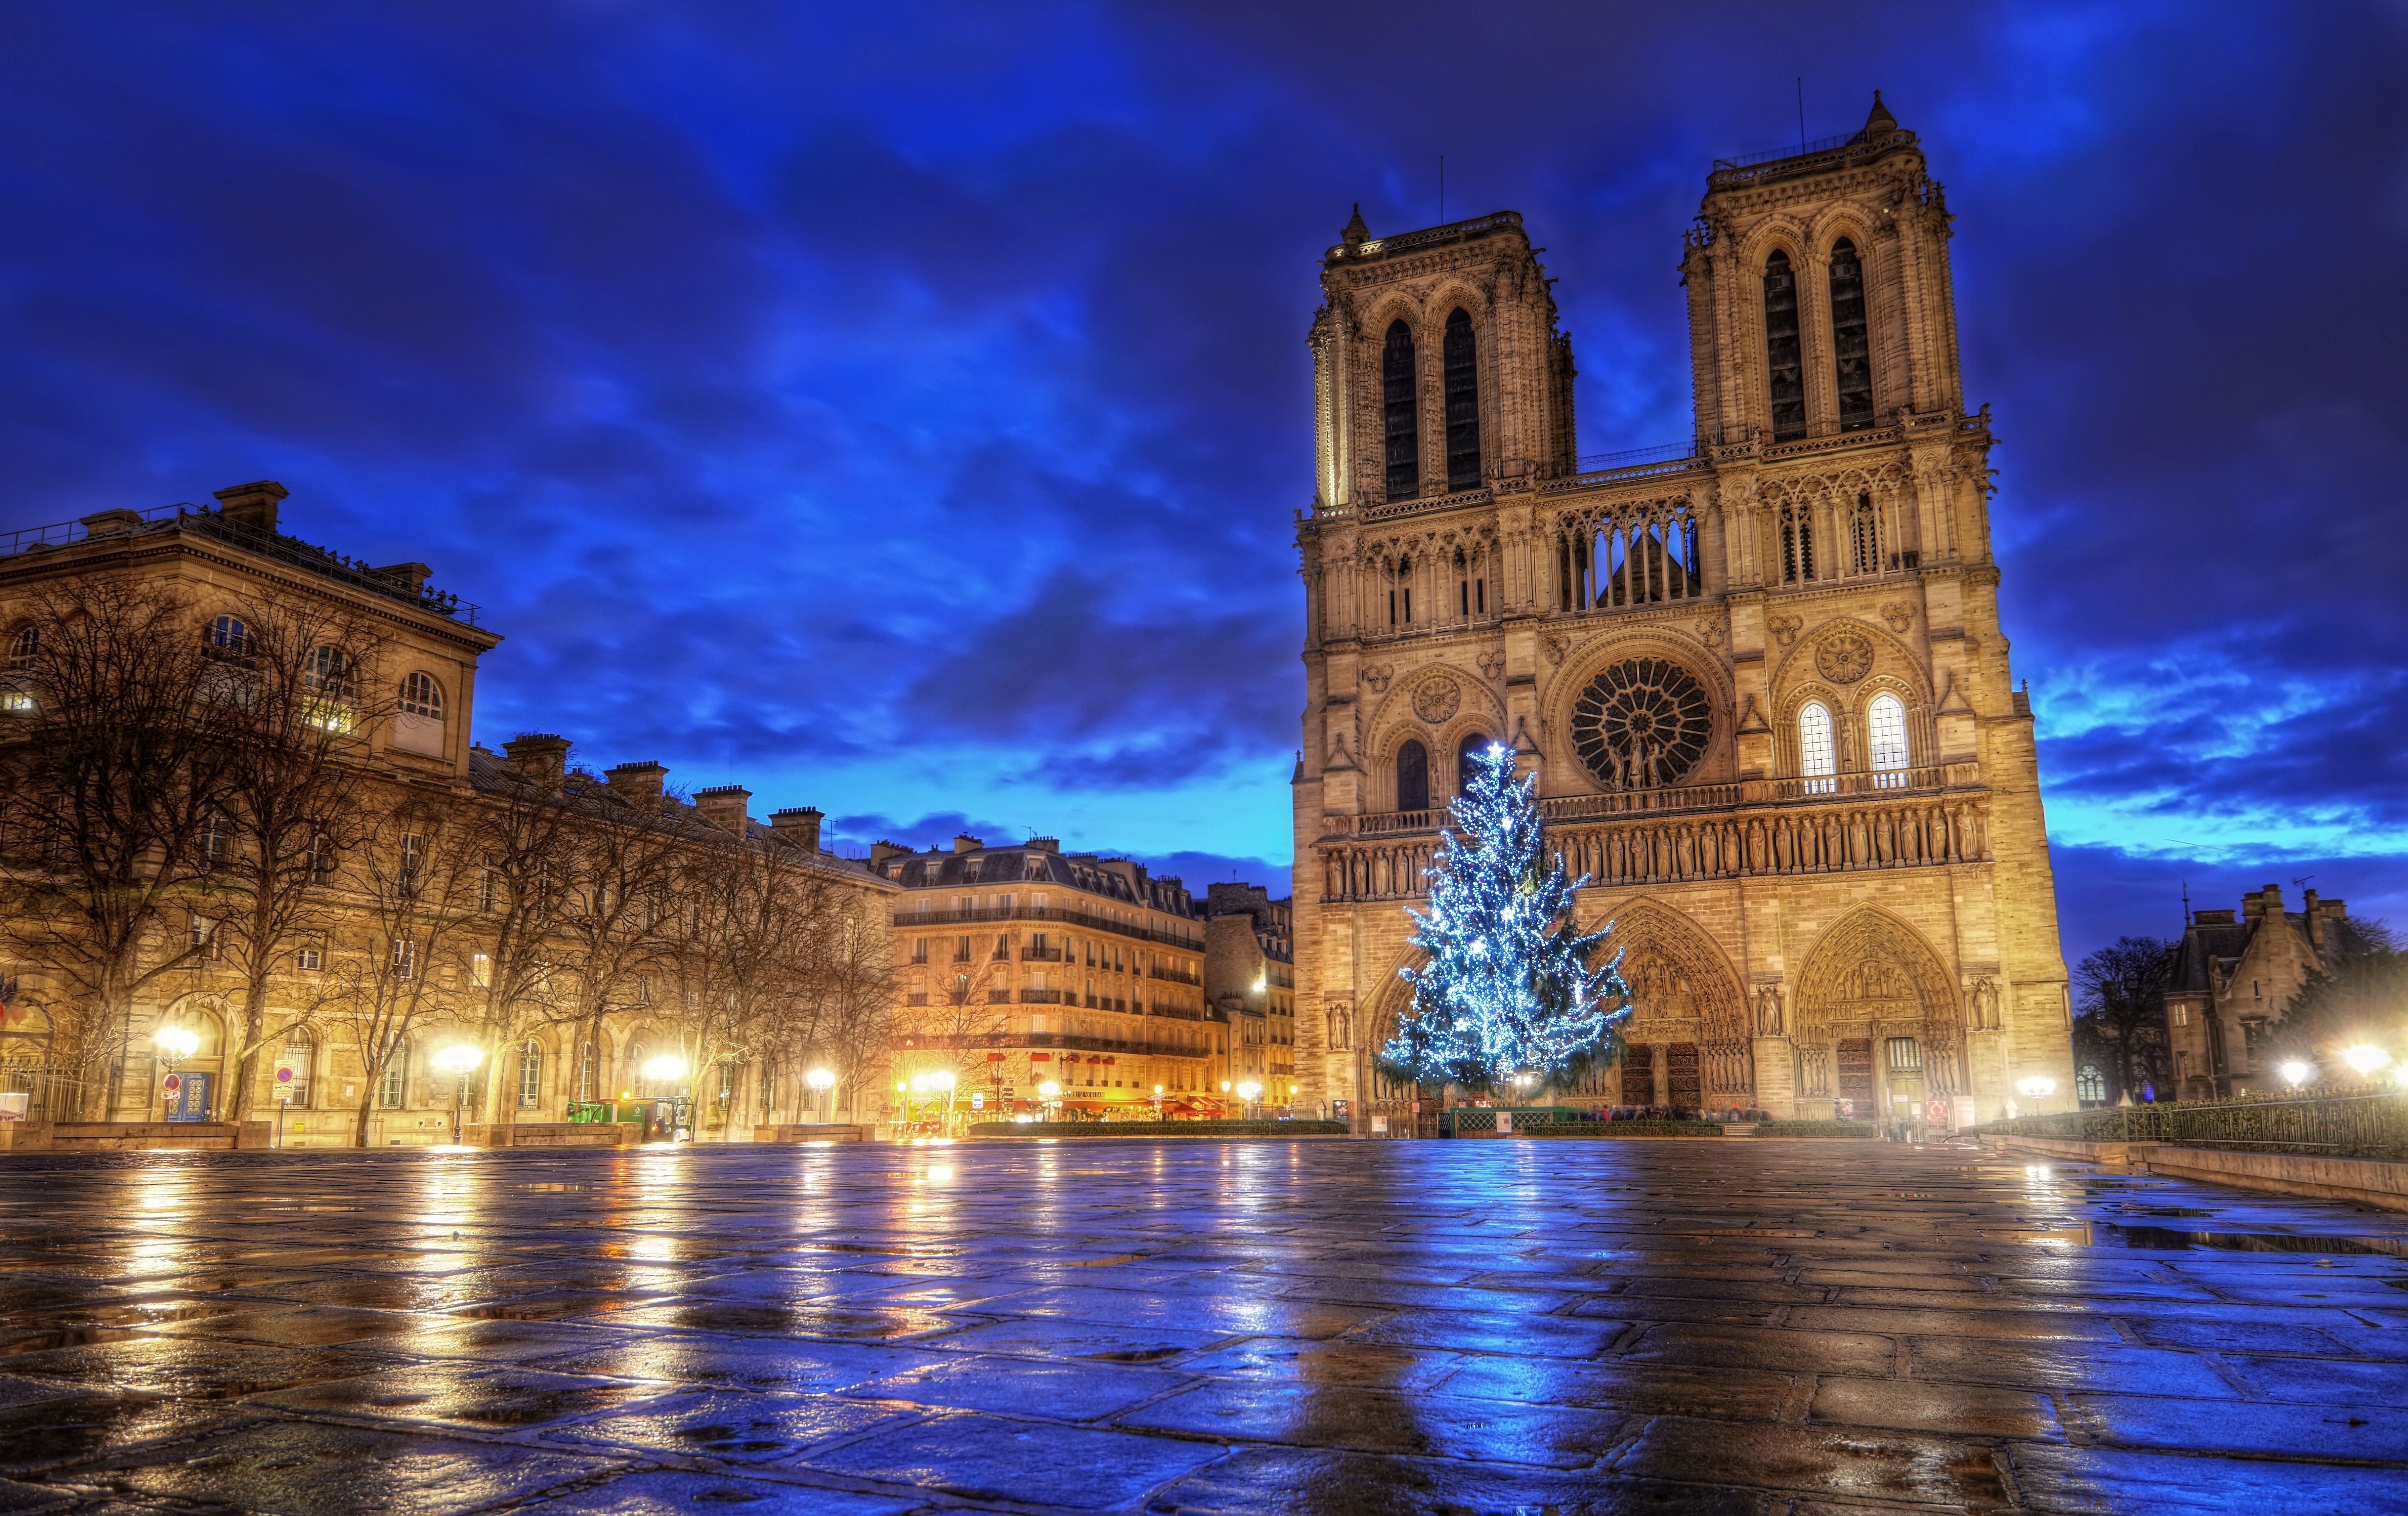 Notre Dame at Christmas time